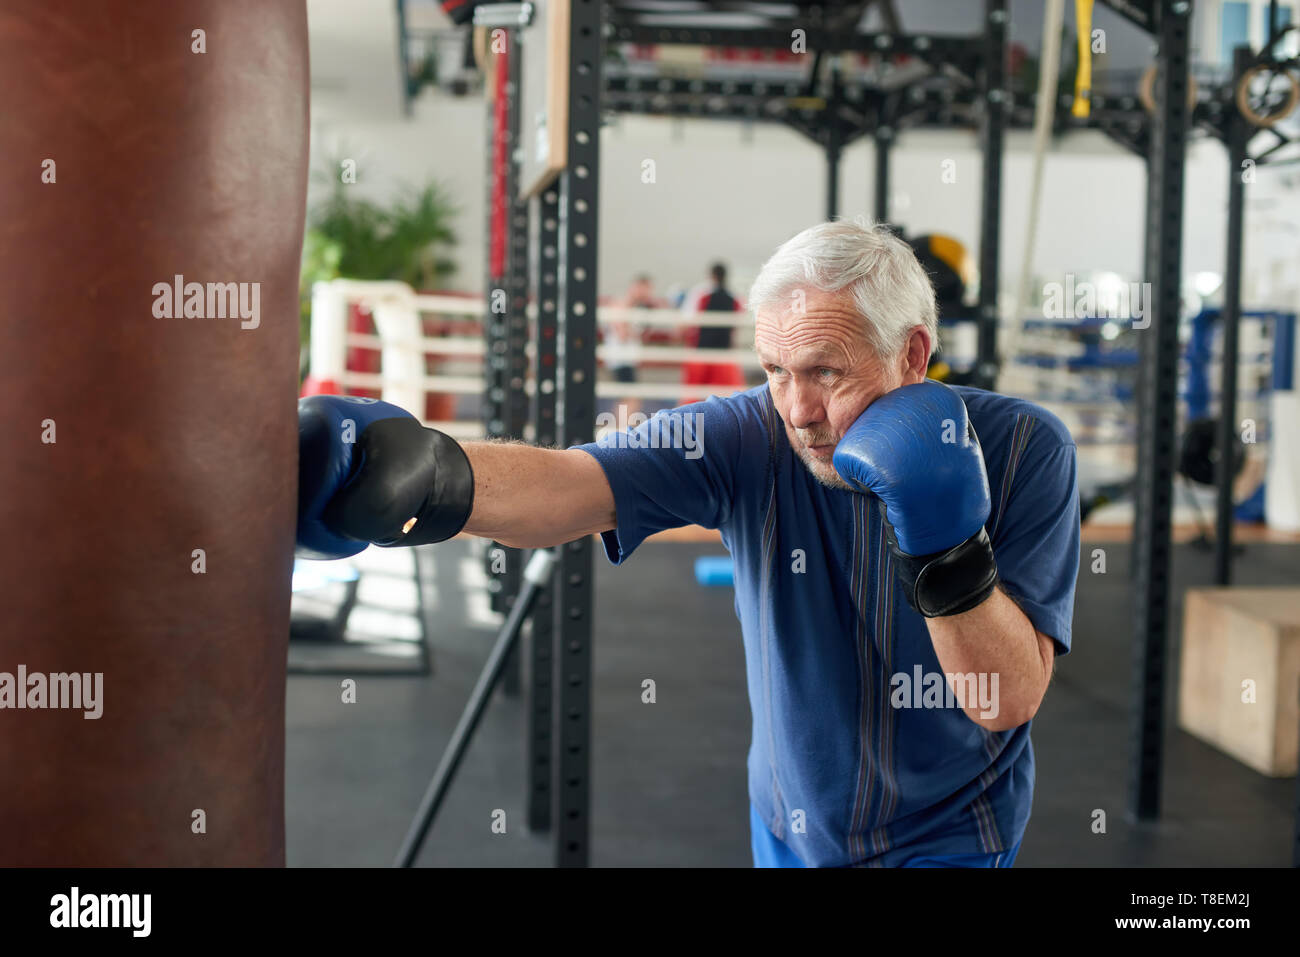 Male pensioner trains on a punching bag. Serious older man working out with punching bag at boxing hall. Sport training concept. - Stock Image